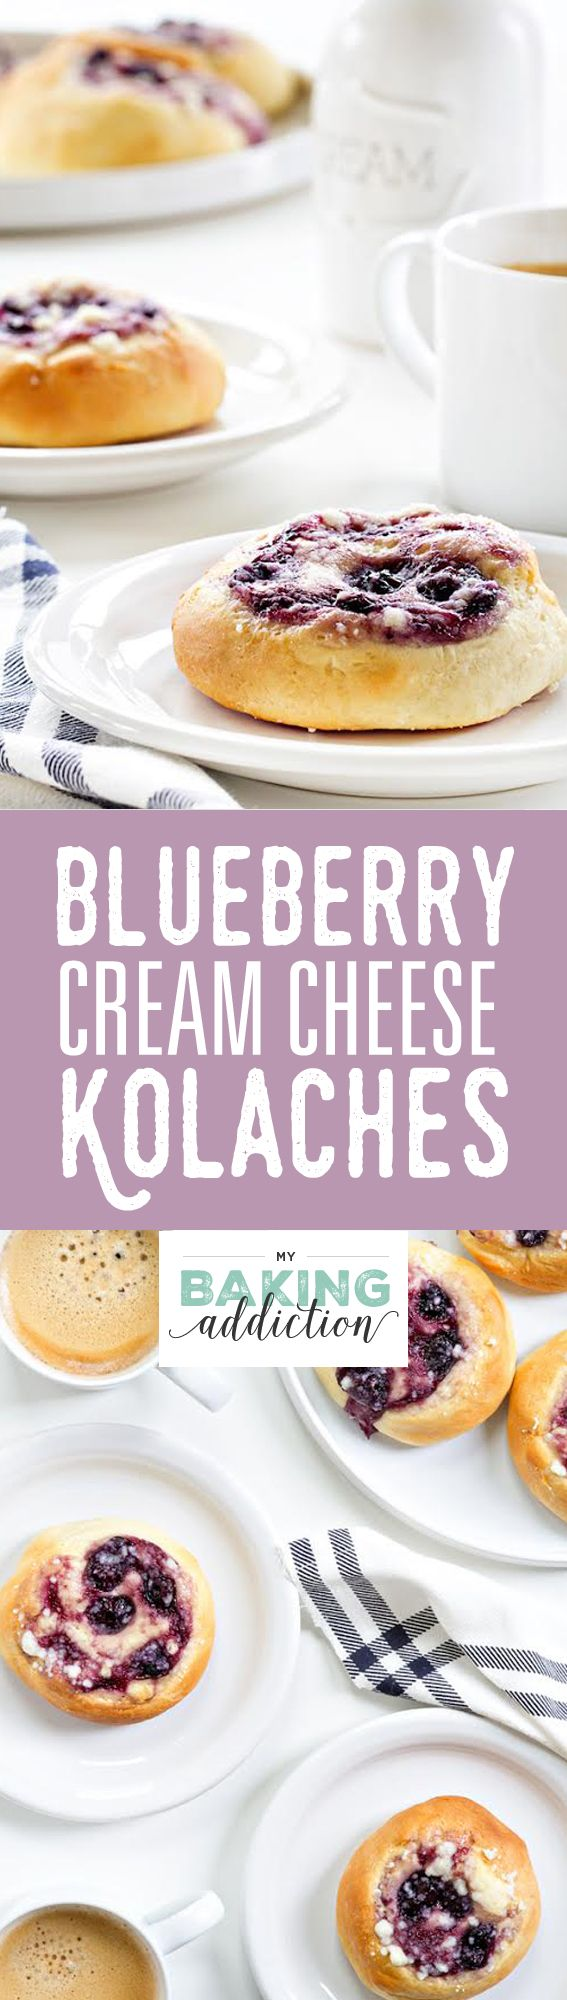 Blueberry Cream Cheese Kolaches are an amazing pastry you must try. Sweet, savory, and completely delightful! from @bakingaddiction